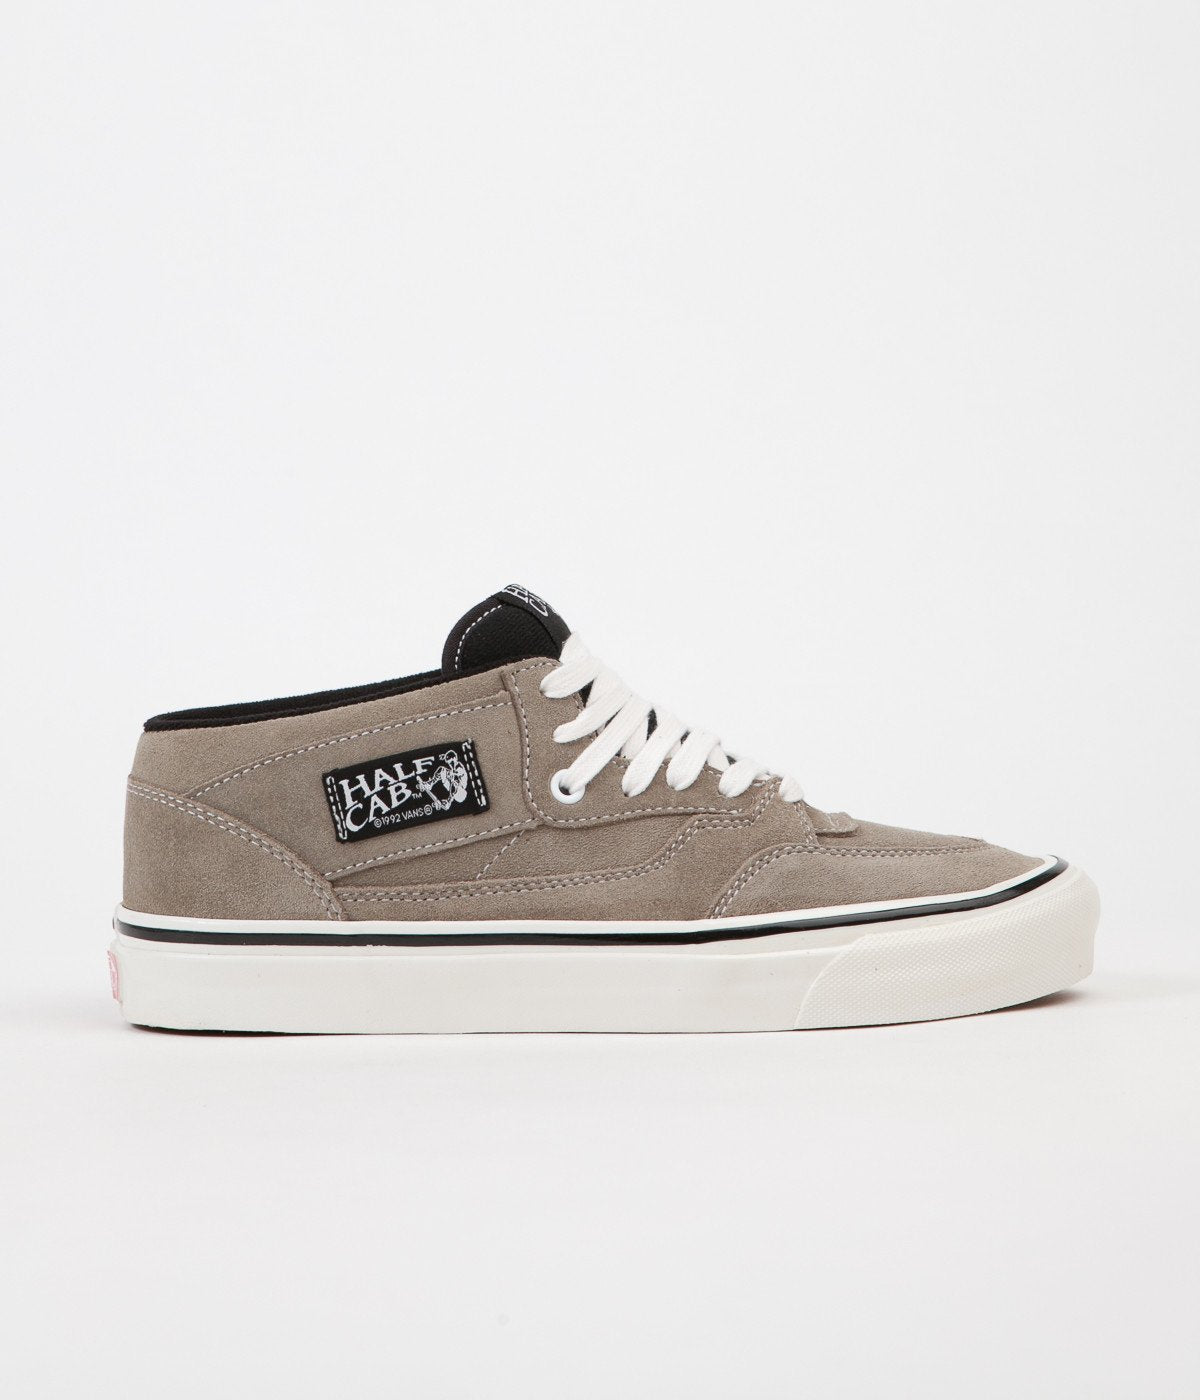 24a66b1a22 ... Vans Half Cab 33 DX Anaheim Factory Shoes - OG Birch ...